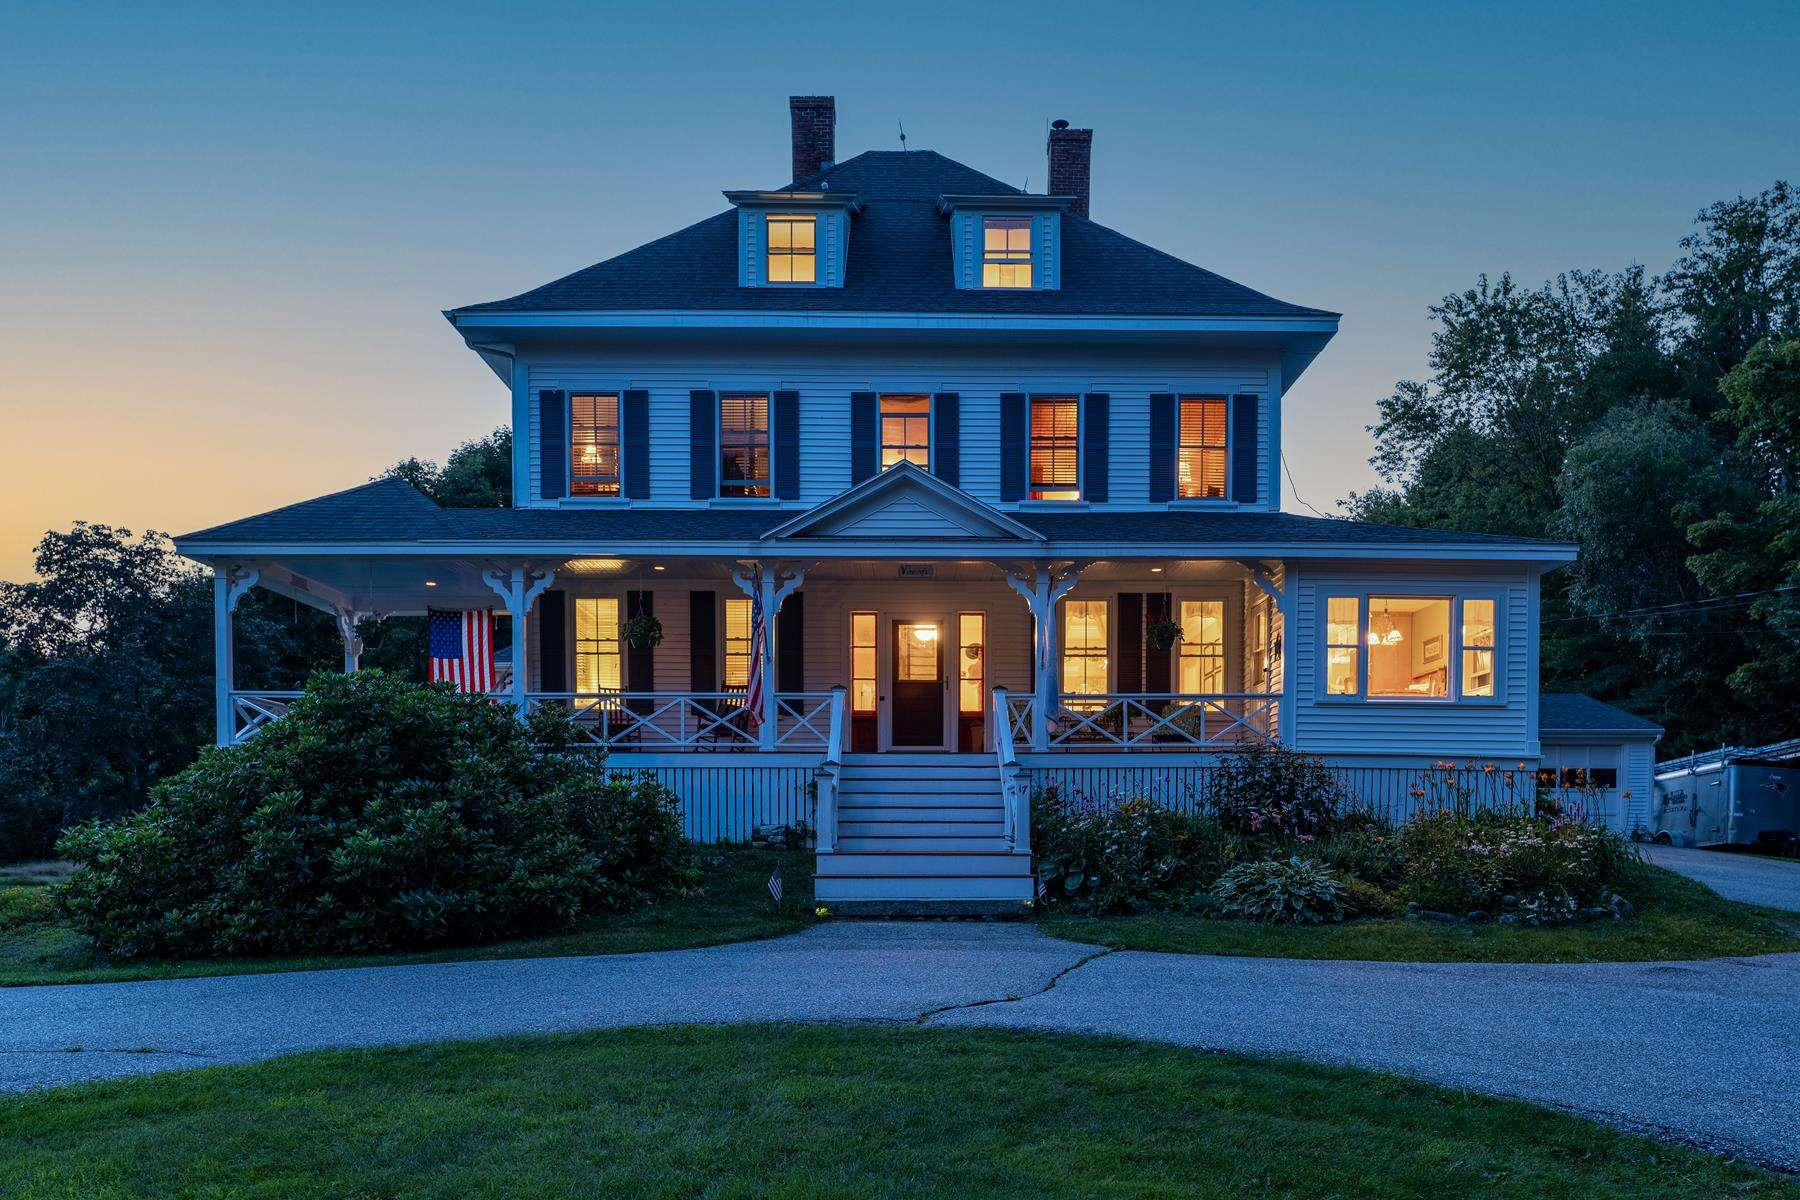 17 Forest Road, Wolfeboro, NH 03894